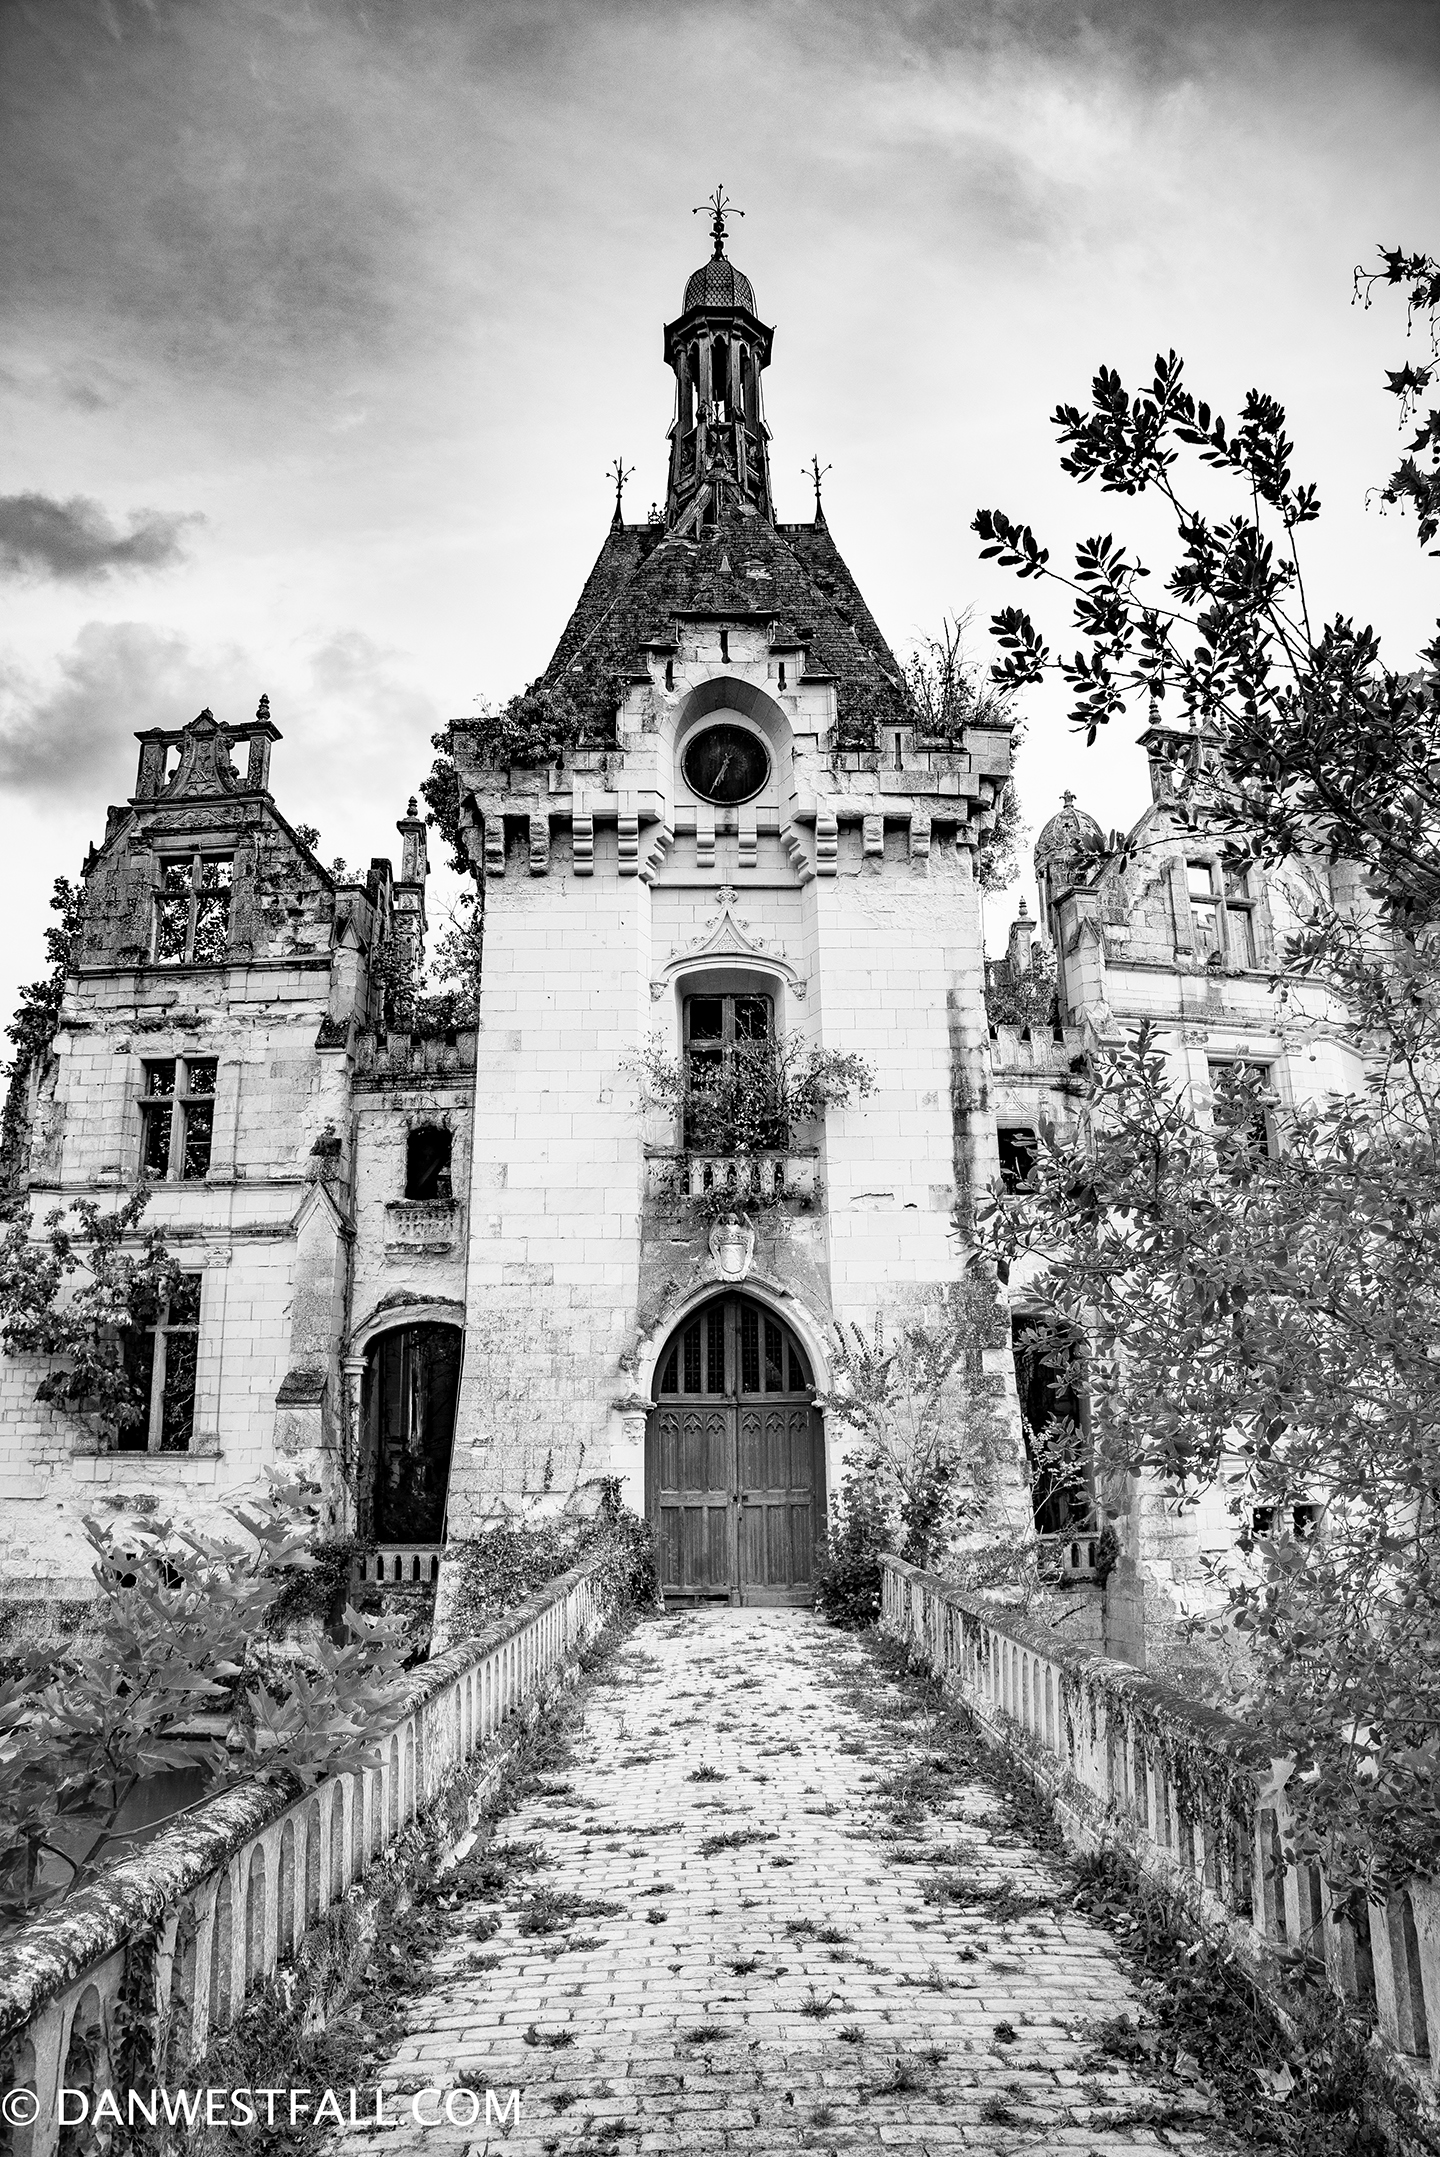 Chateau Ruin in France. #727